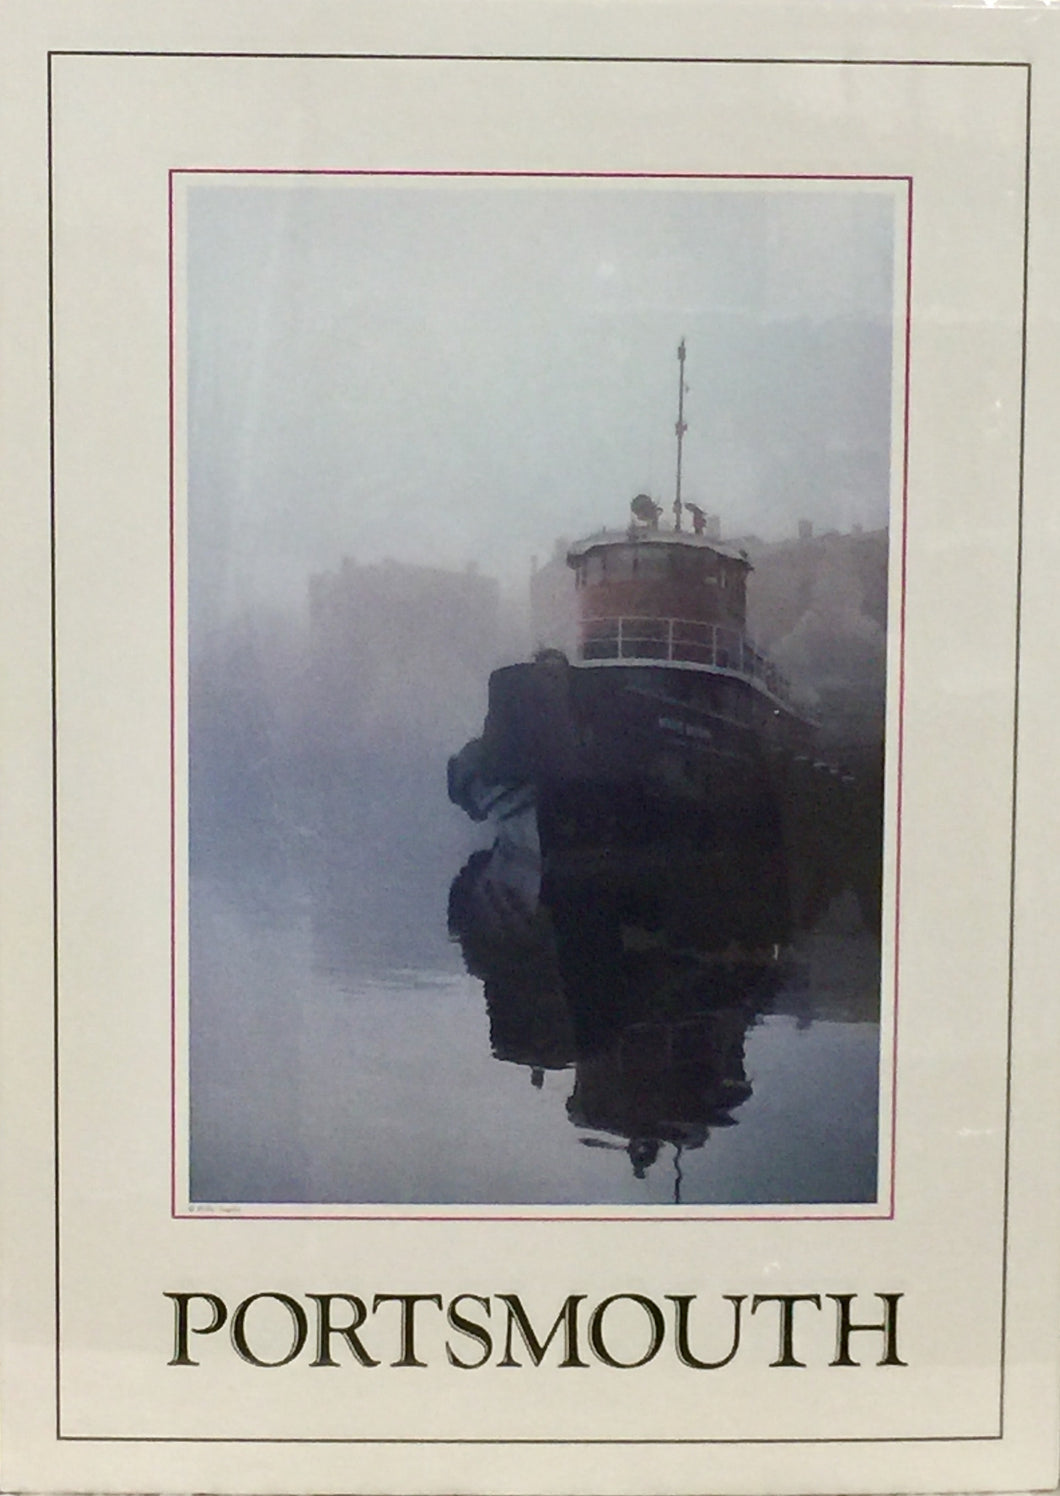 Classic Portsmouth Tugboat Poster